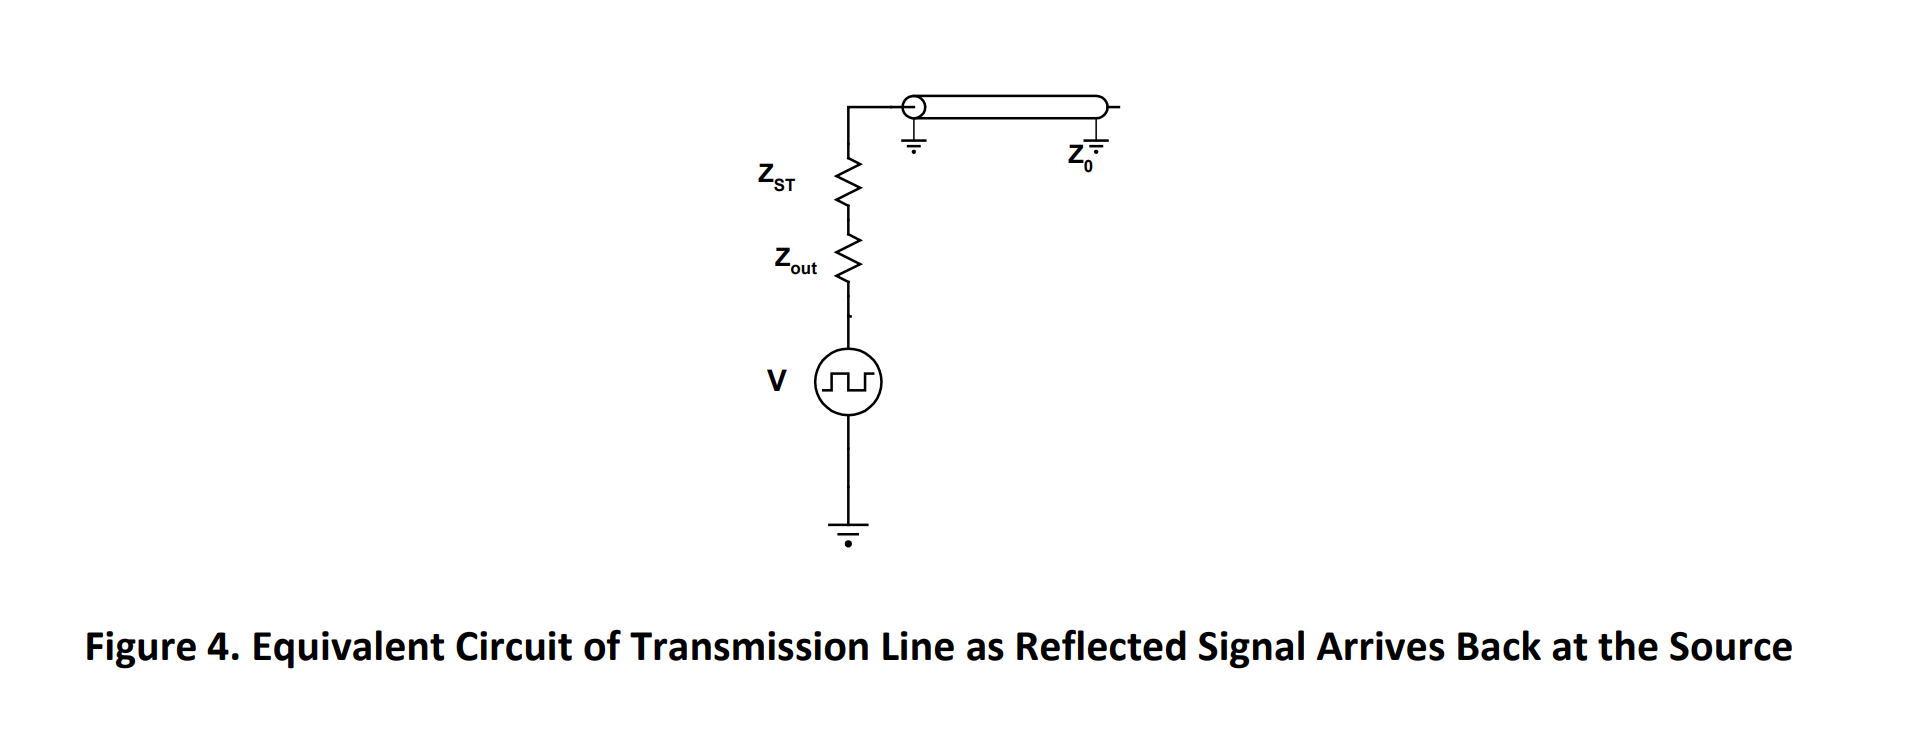 Figure 4. The signal voltage source with two impedance resistors in series to the start of the transmission line form the equivalent circuit seen by the reflected signal